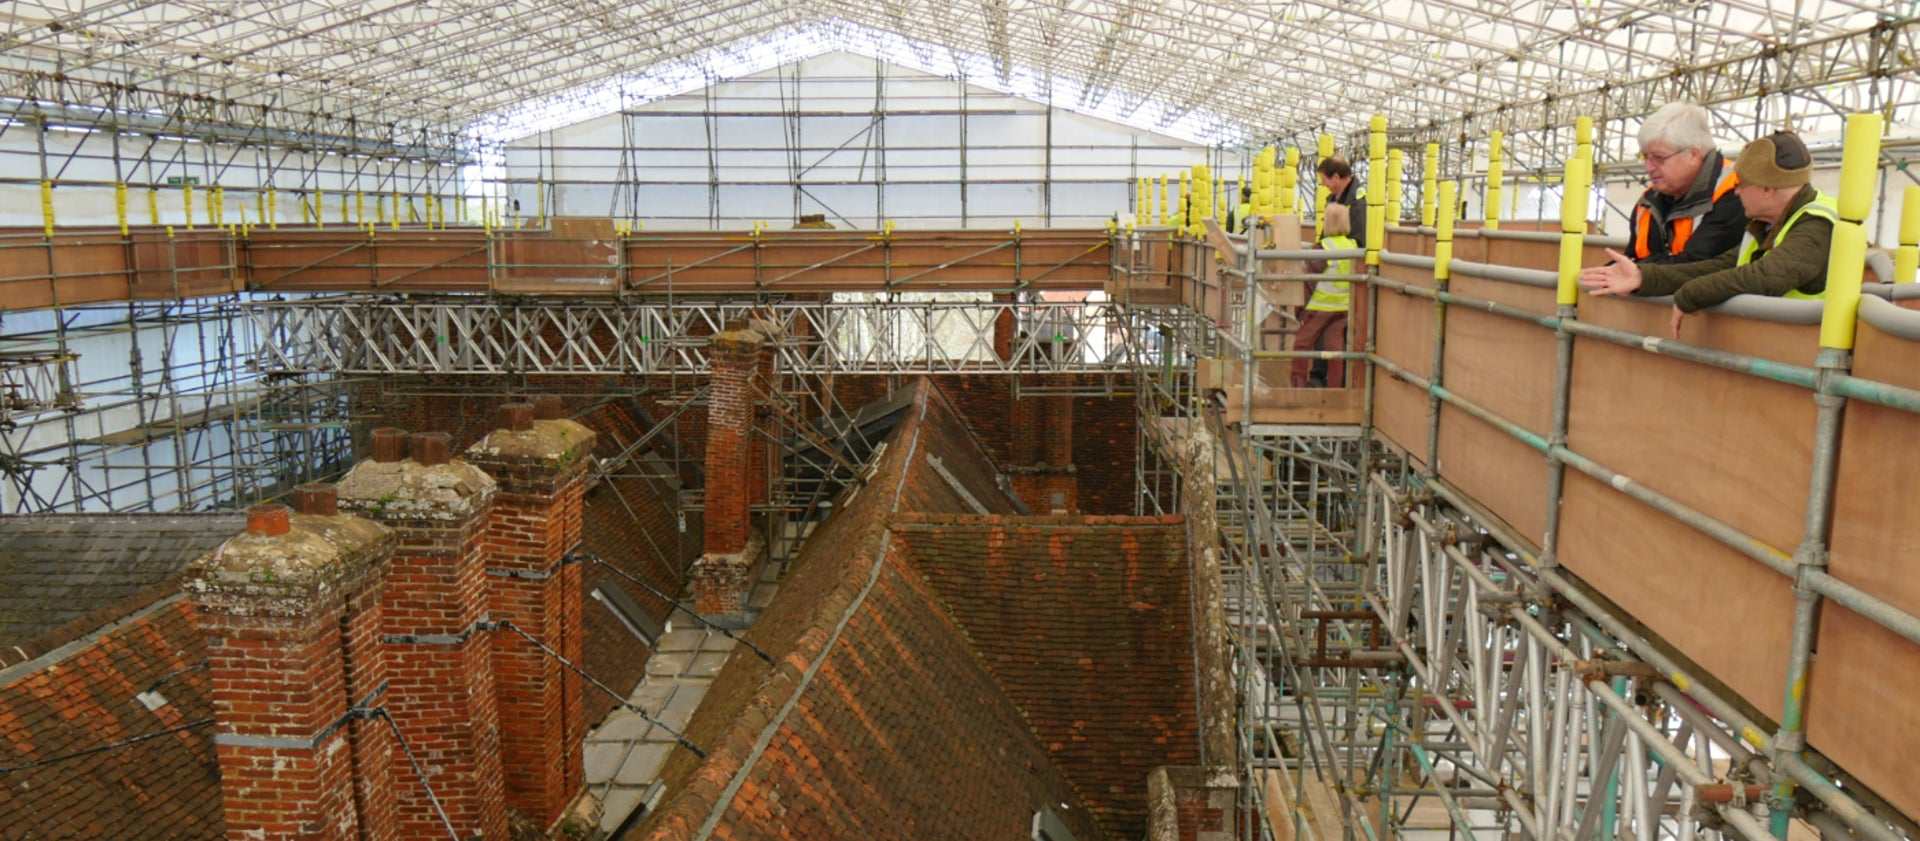 Rooftop Walkway Showcases Heritage Science At The Vyne